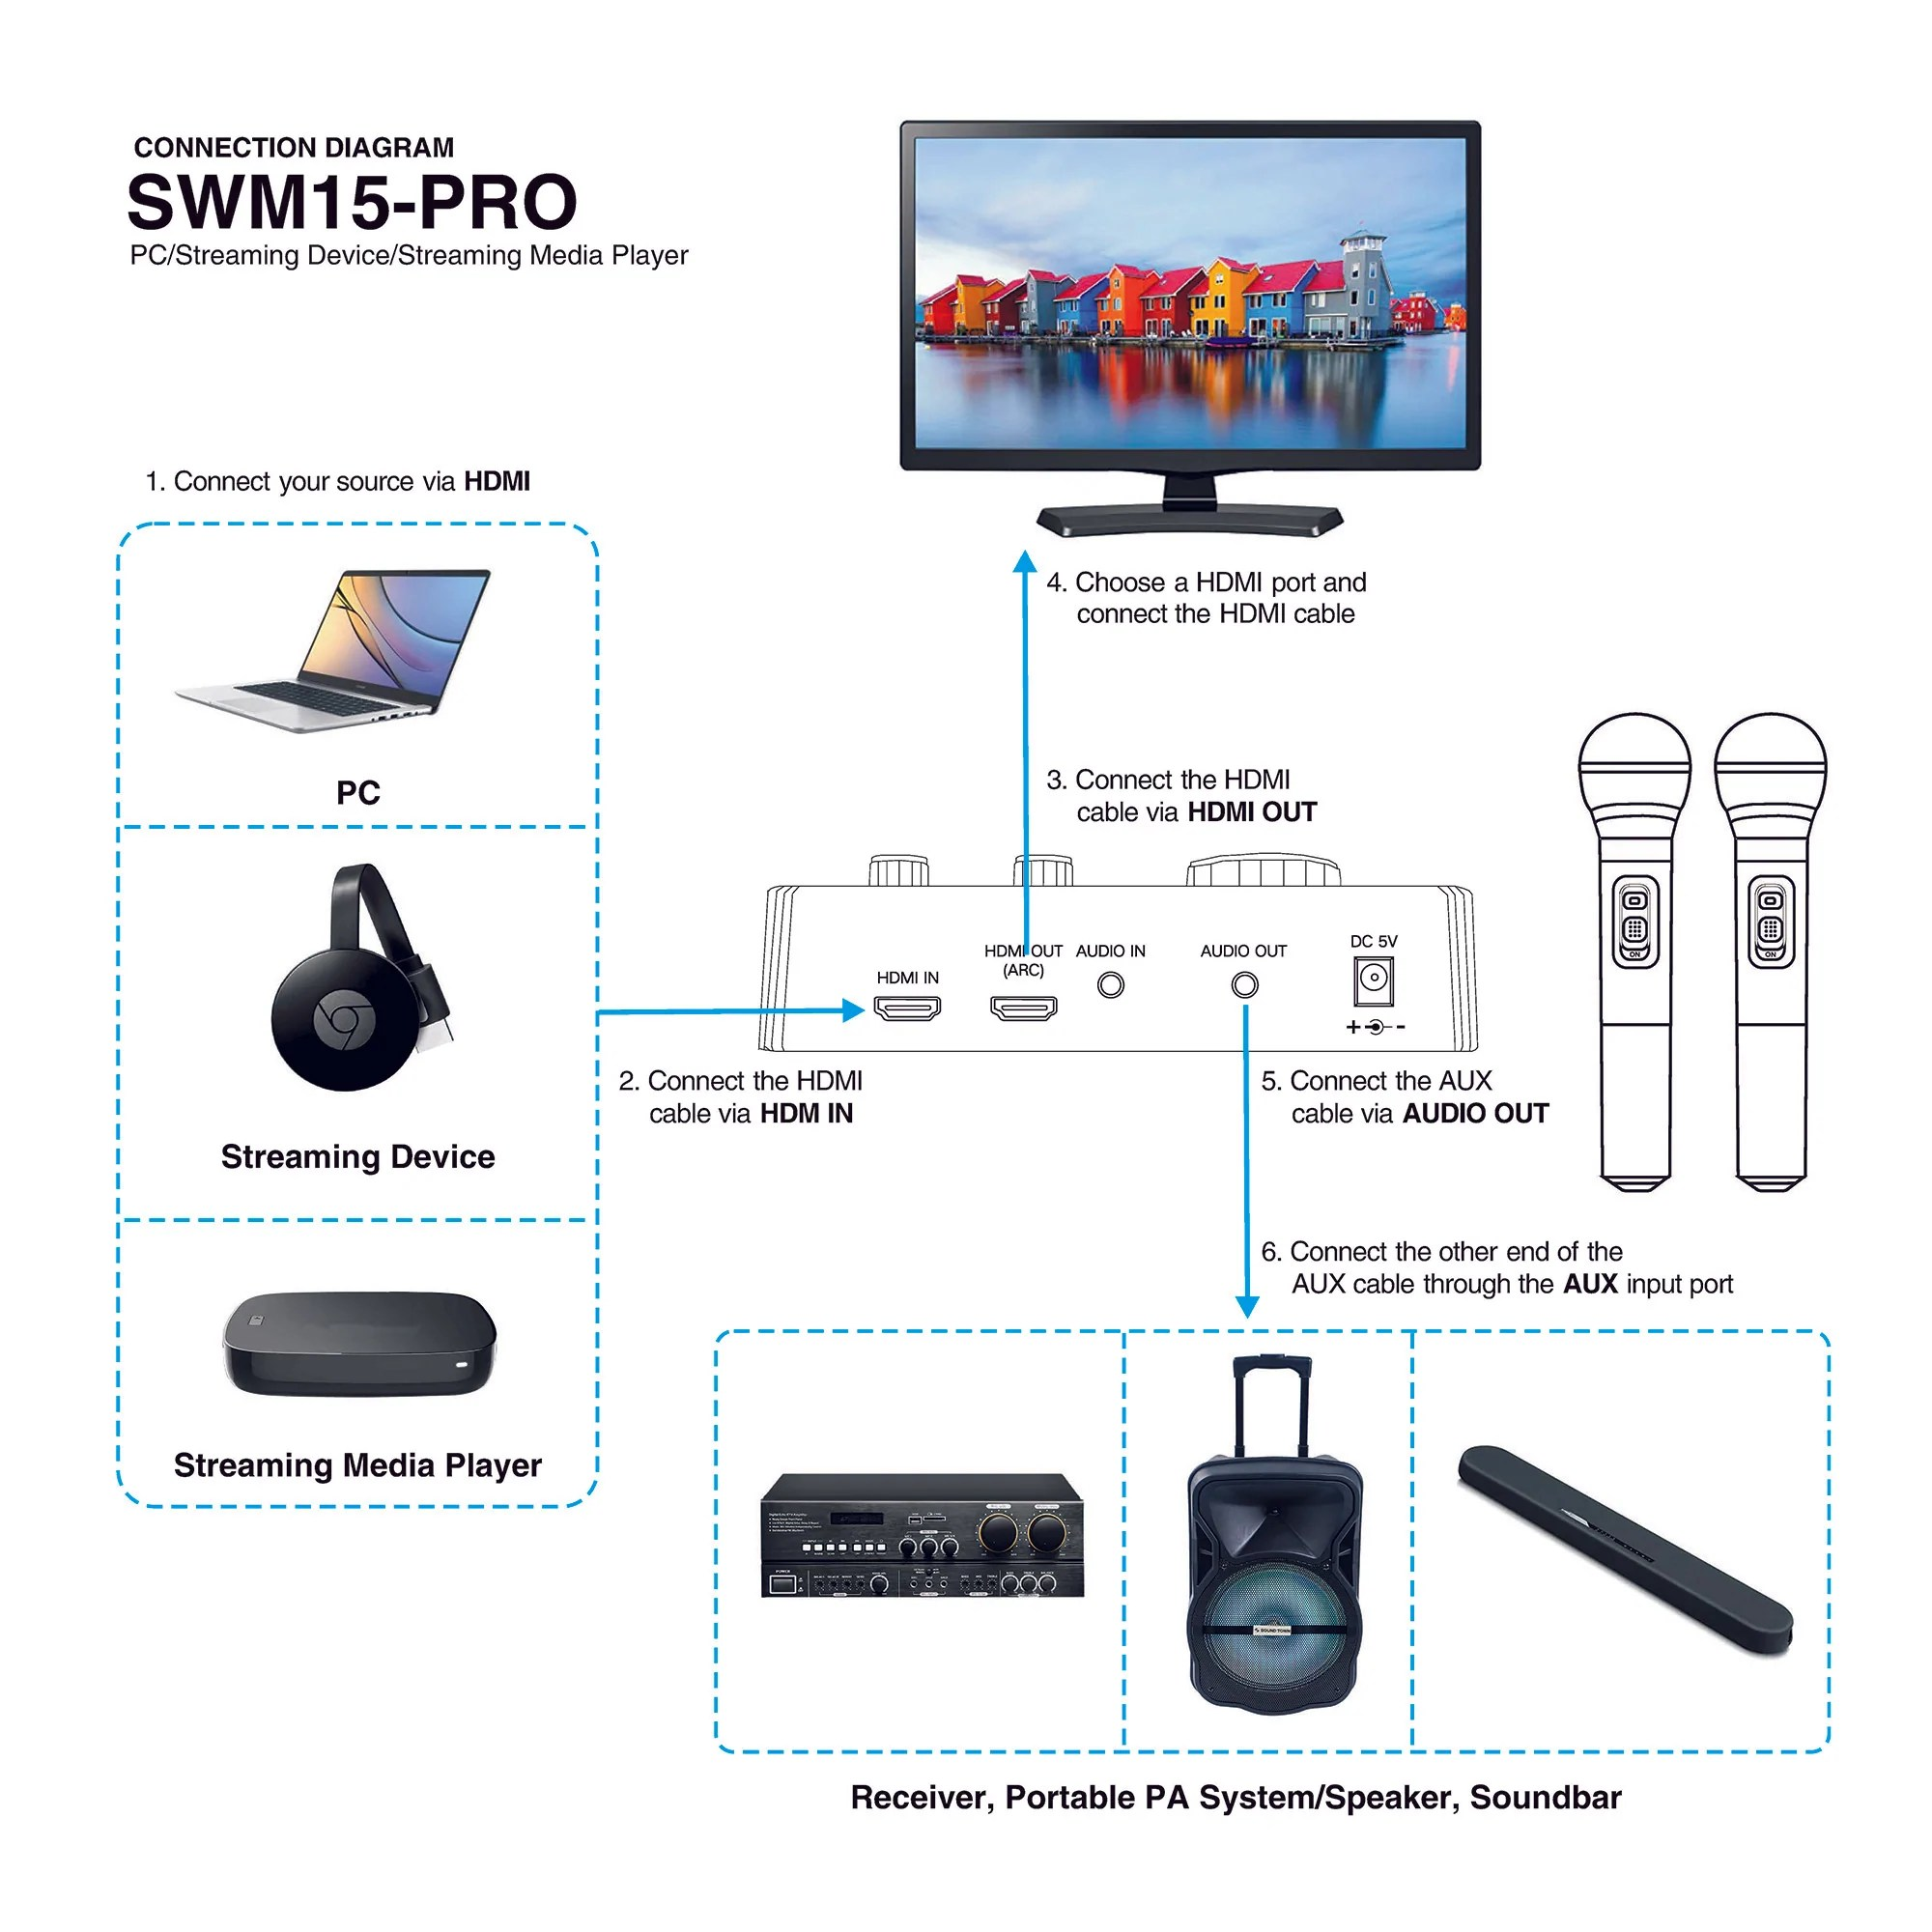 swm15 pro pc streaming device laptop google chromecast media player connection diagram how to connect [ 2000 x 2000 Pixel ]